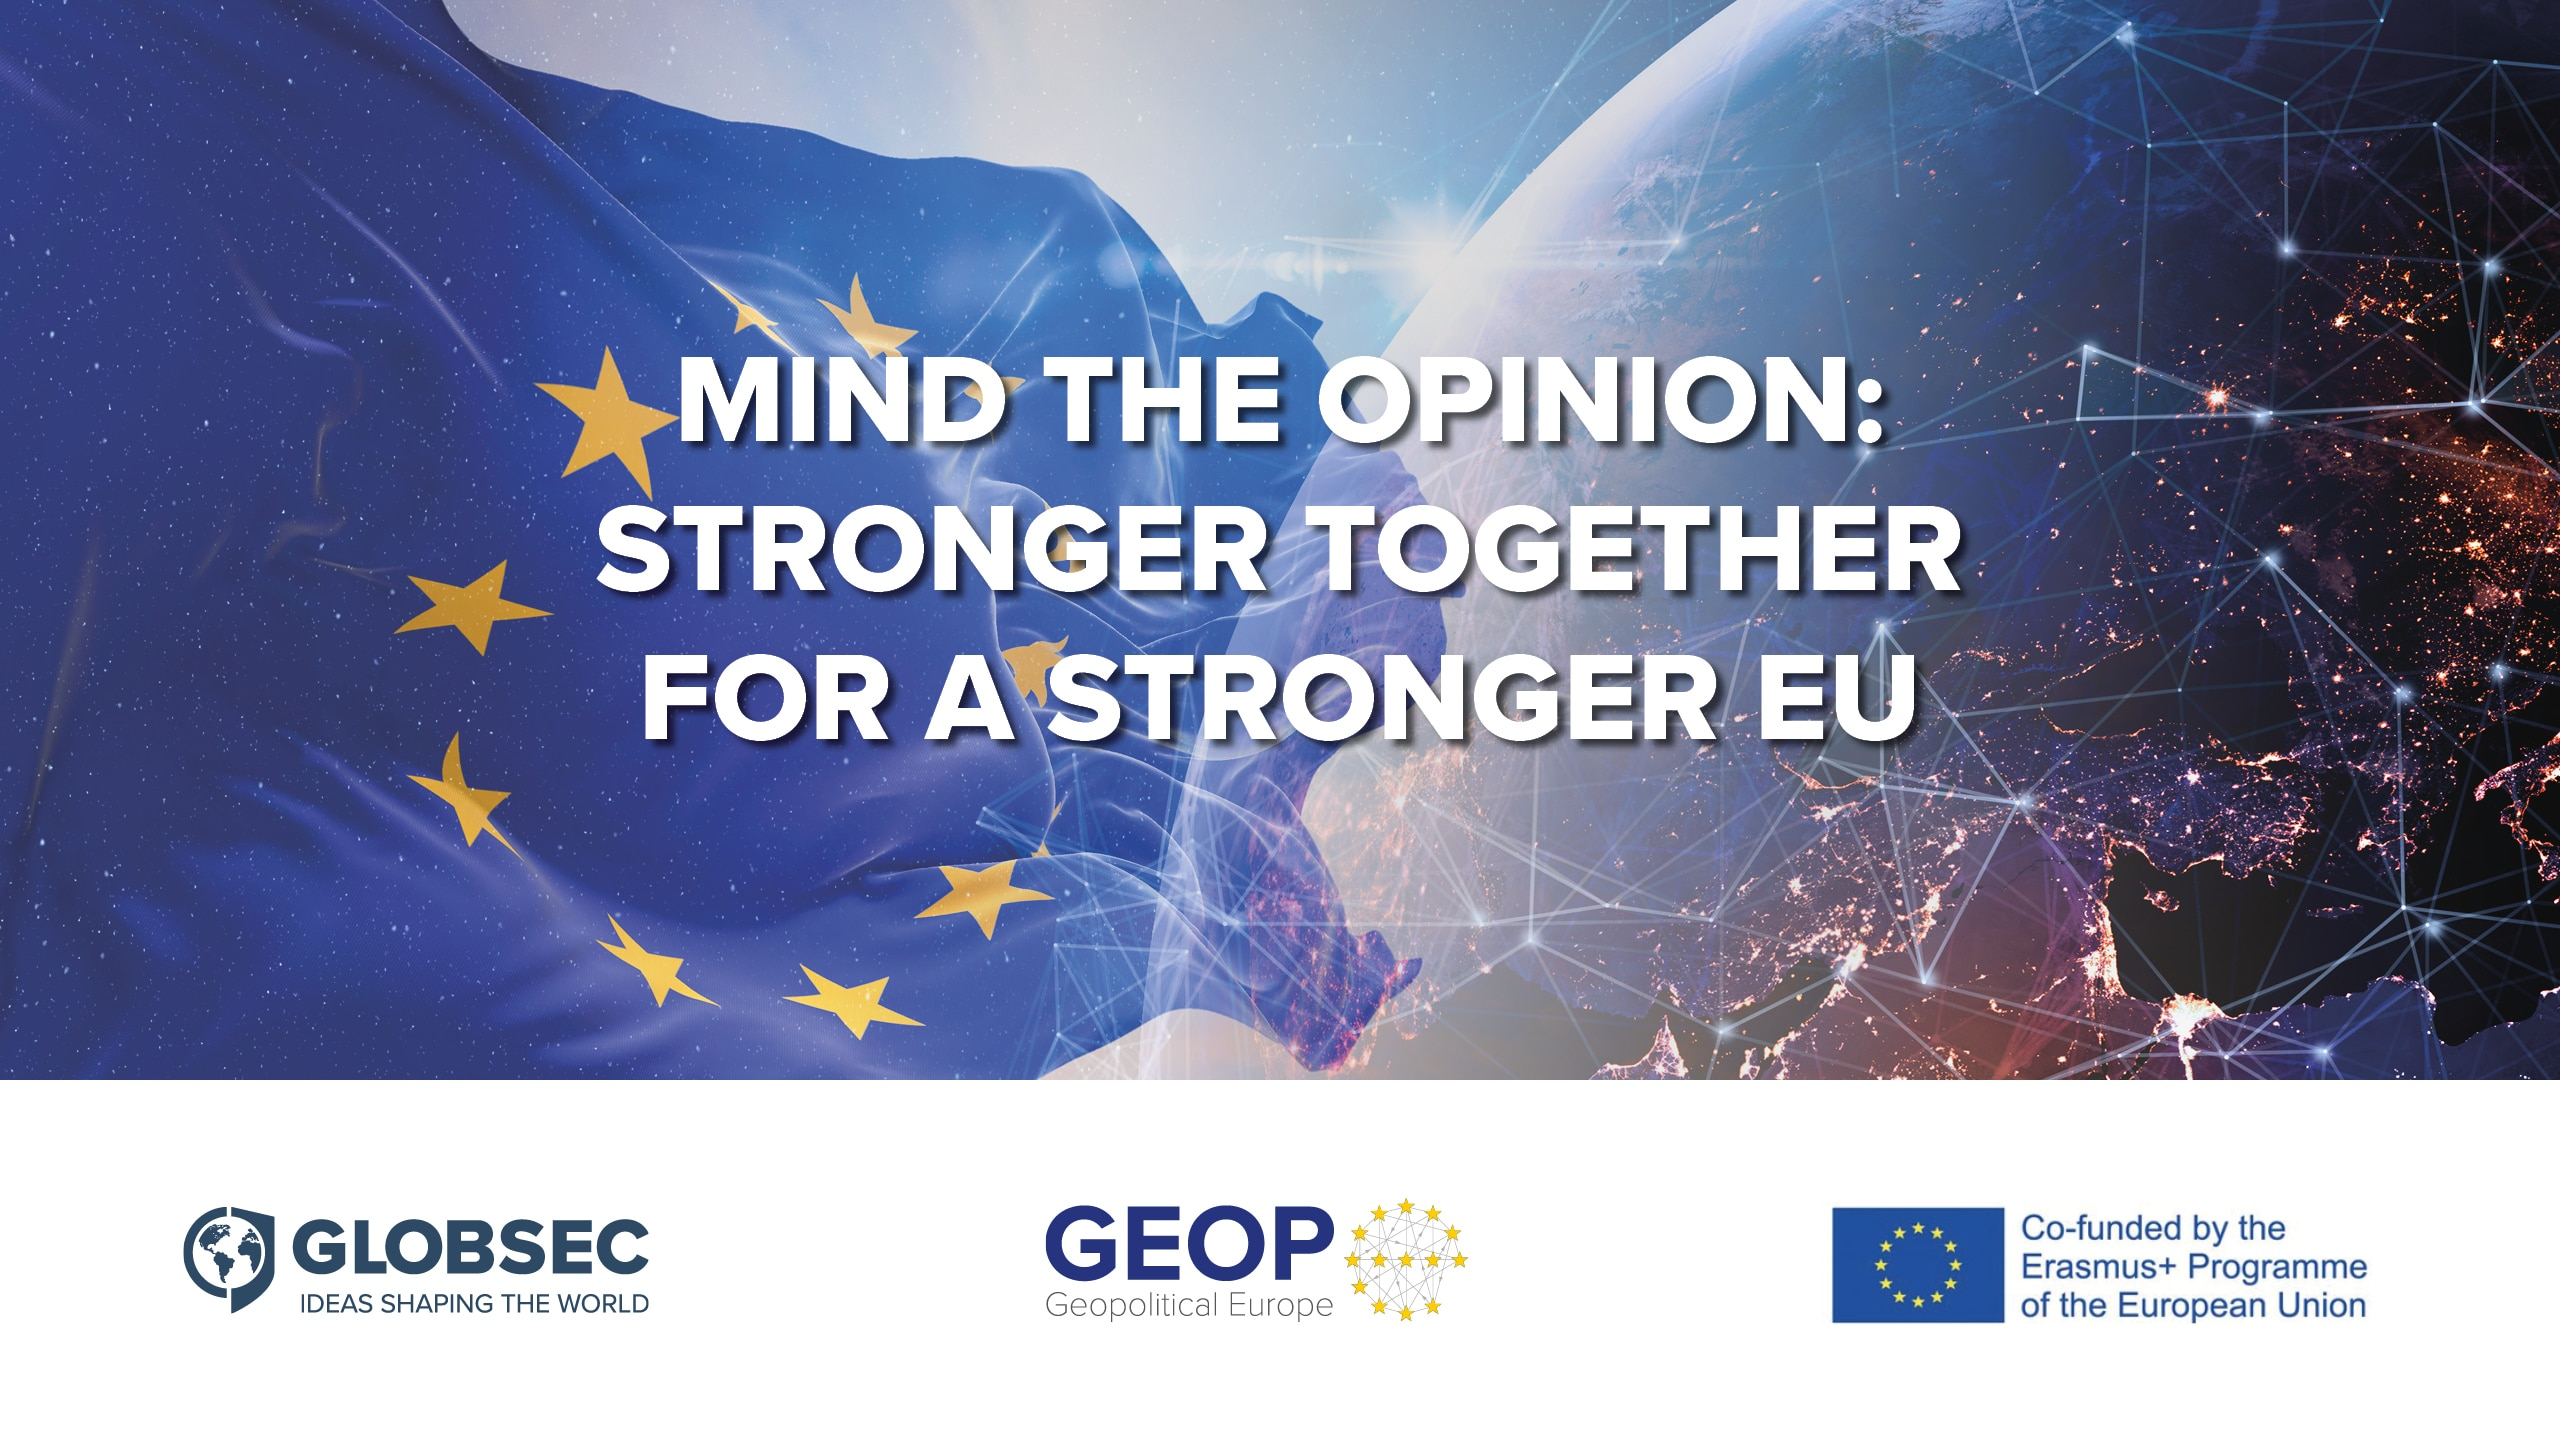 Mind the Opinion: Stronger Together for a Stronger EU - Public Opinion Across 10 Central and Eastern European Countries on Foreign Policy